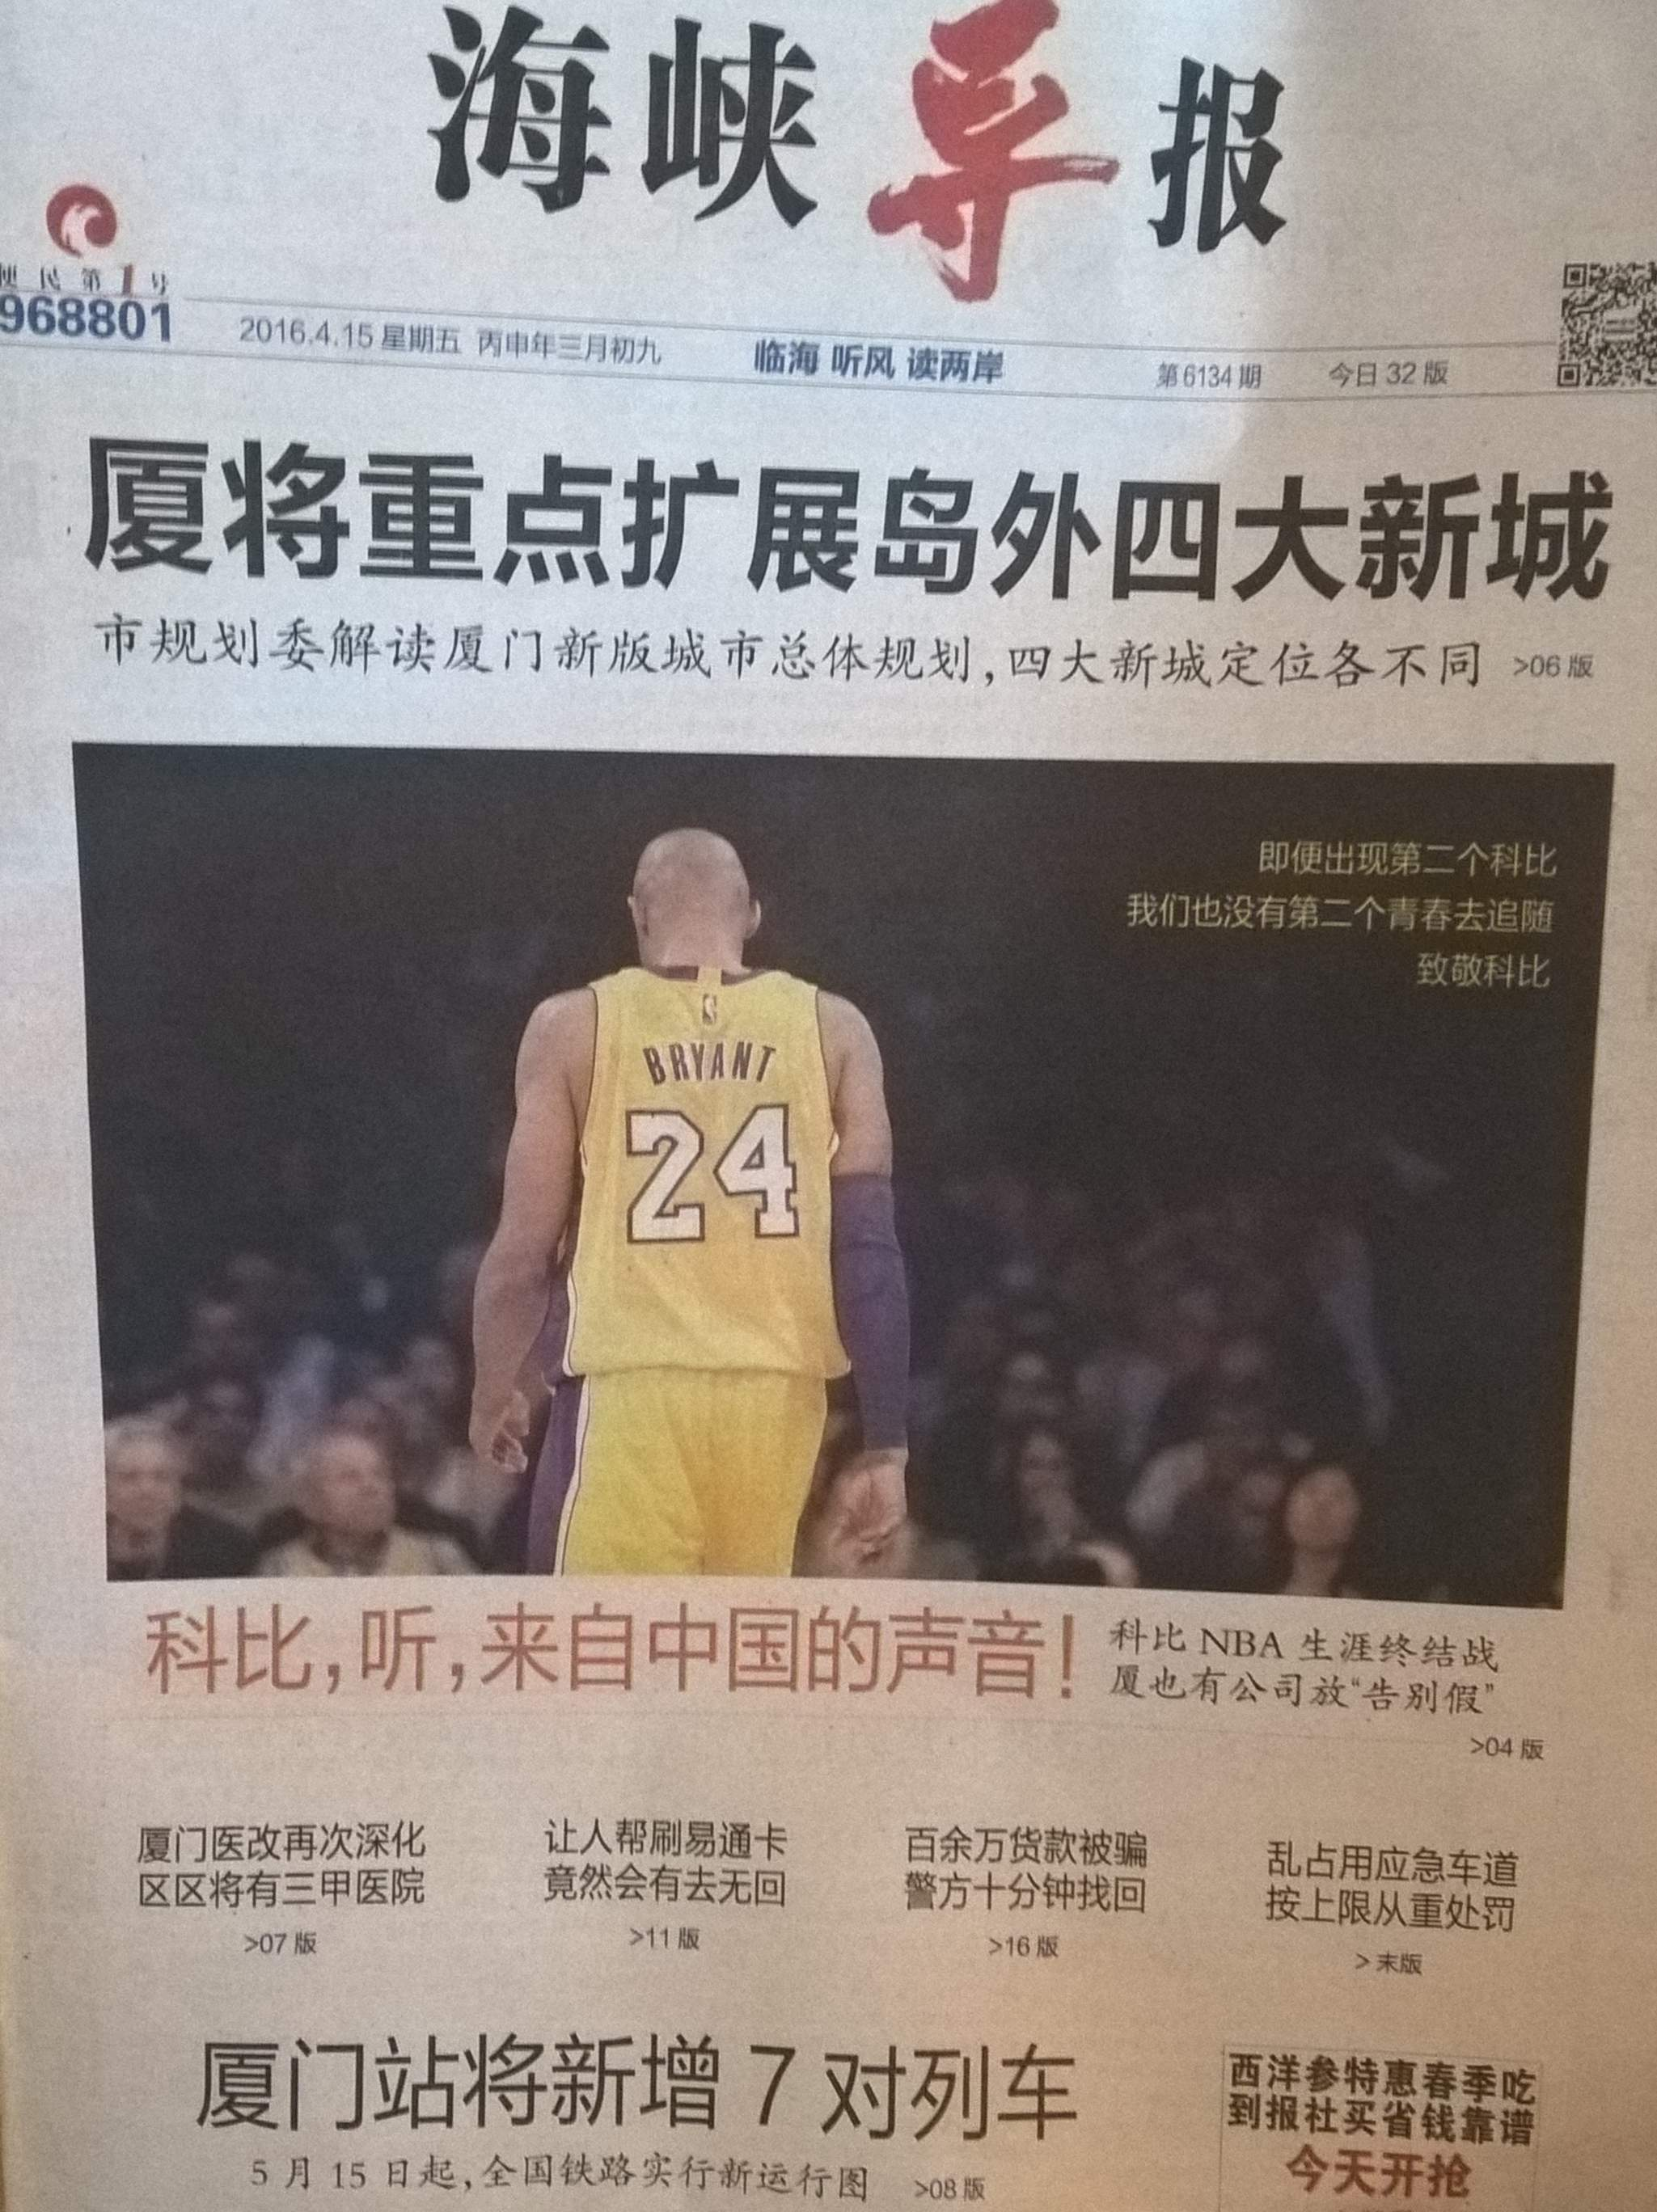 Chinese newspaper article about Kobe Bryant in his final NBA game.